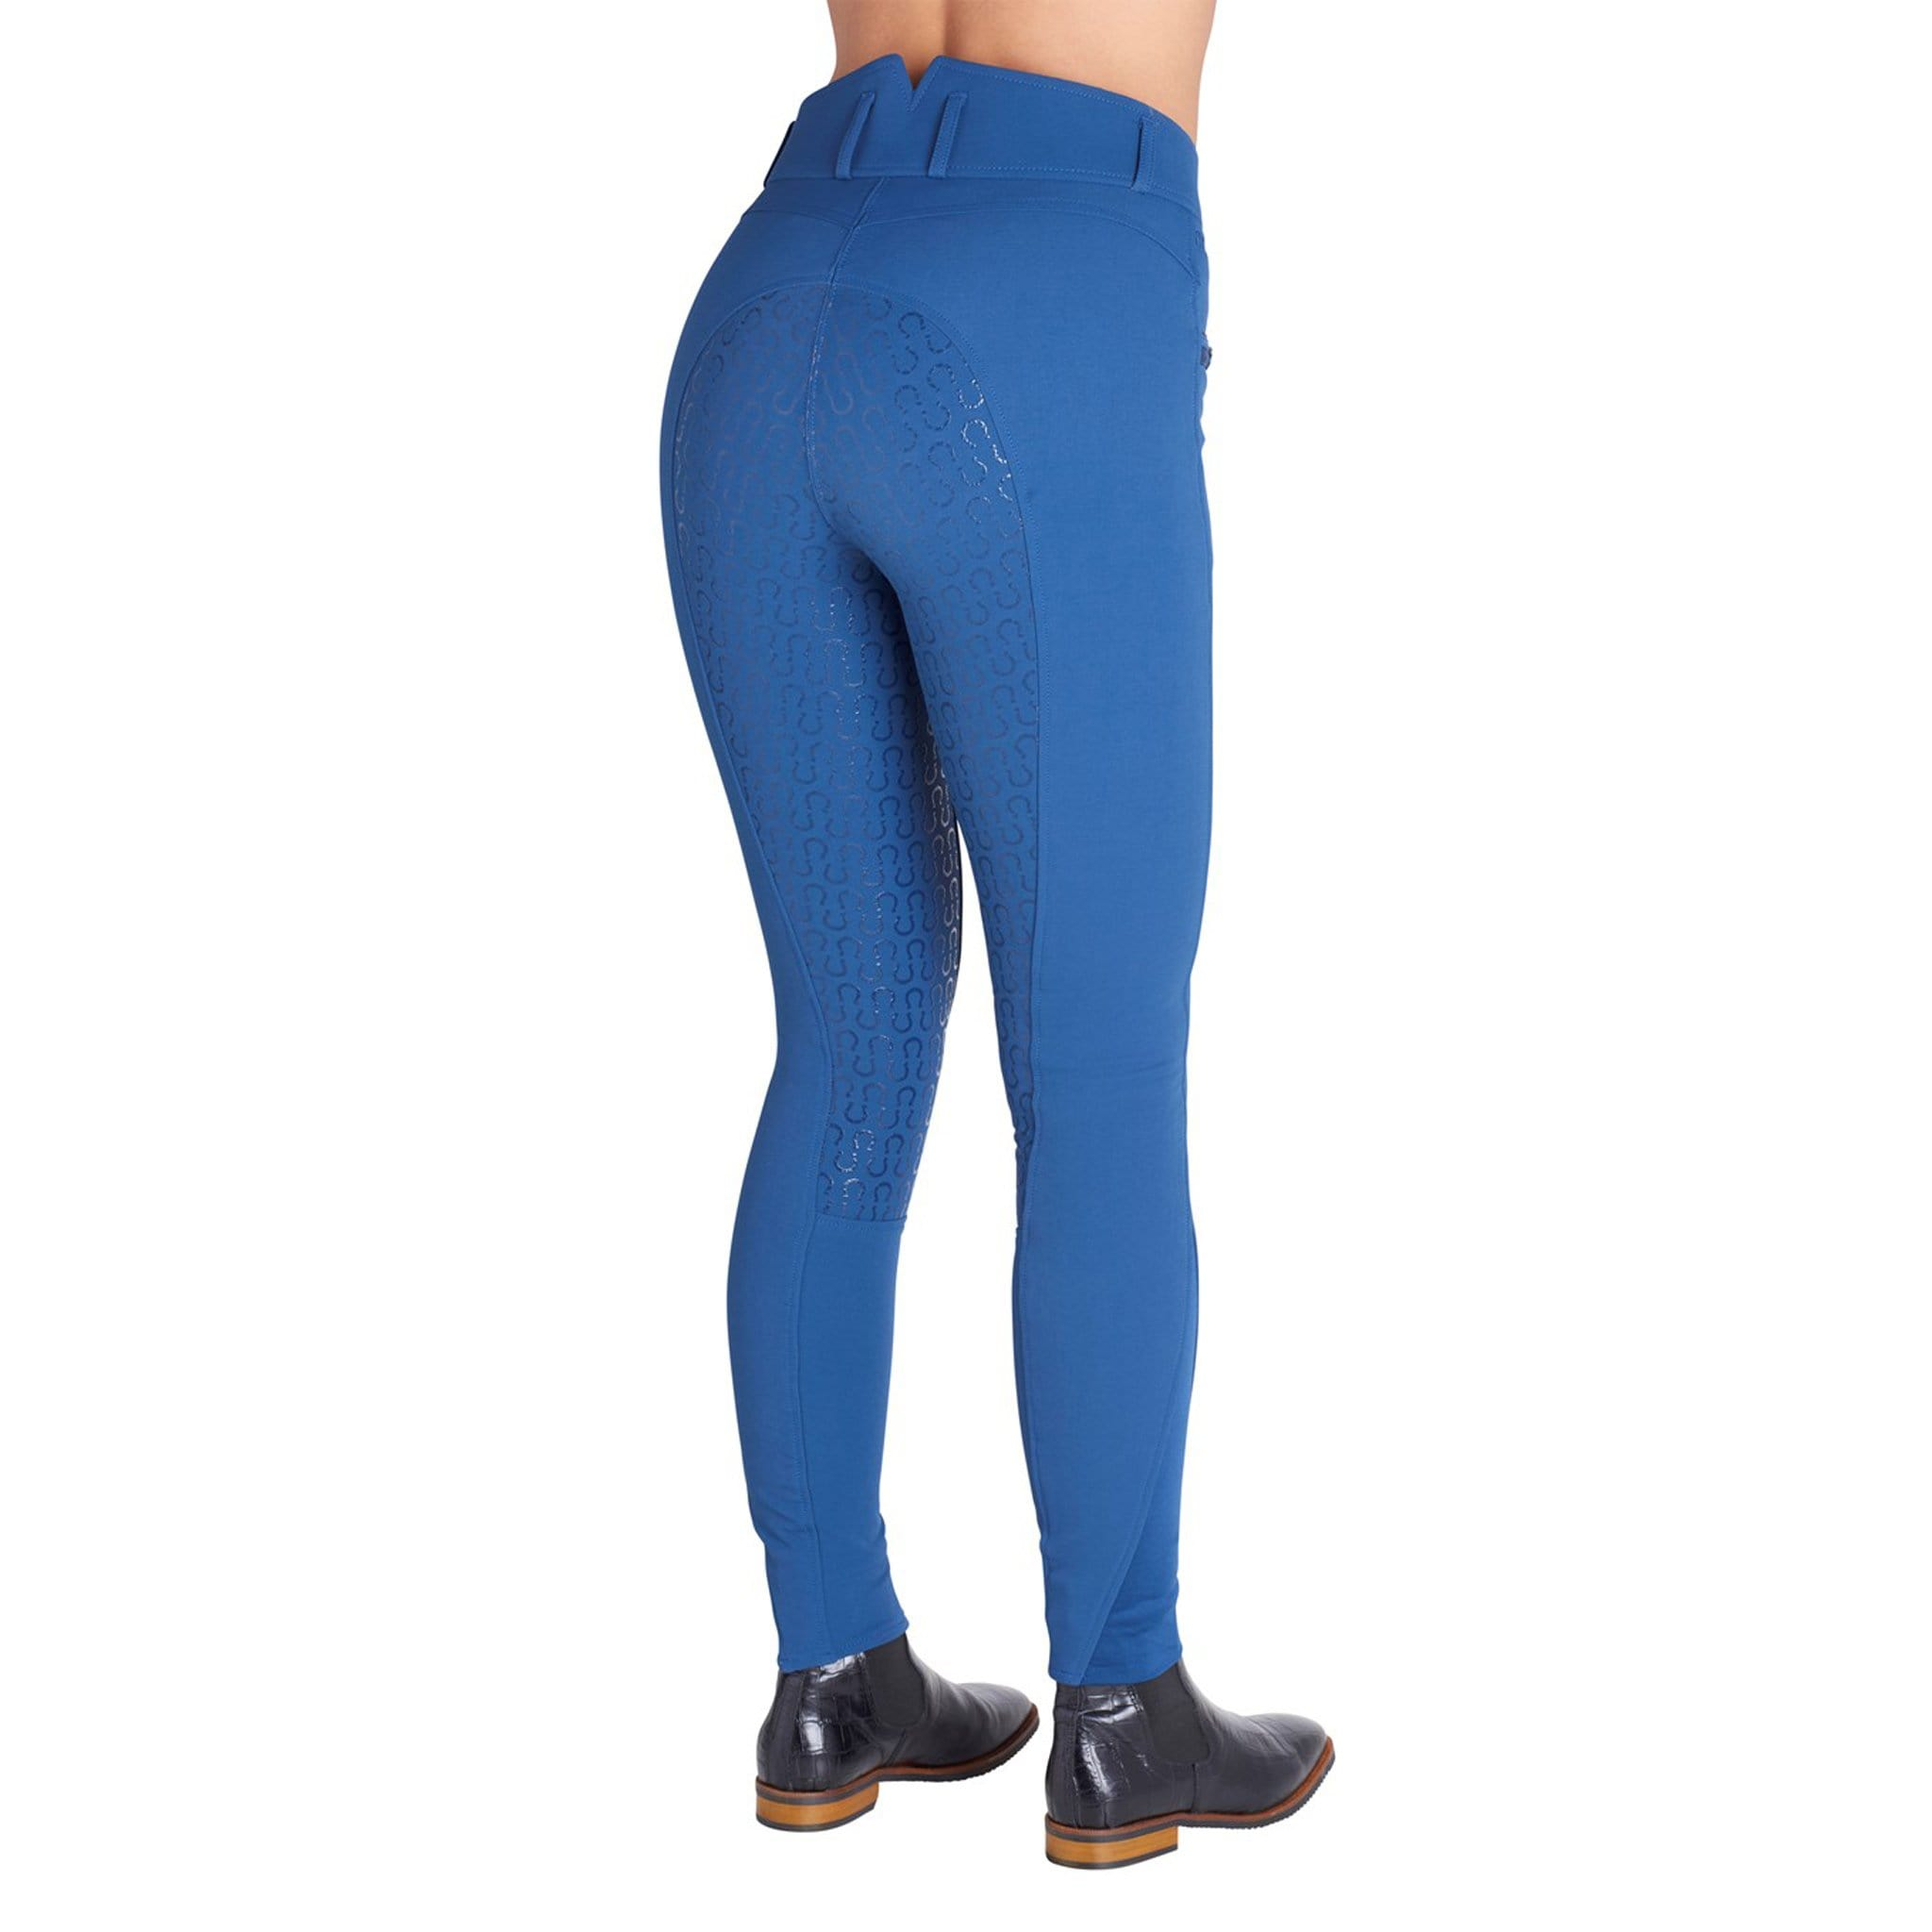 Montar Molly High Waist Silicone Full Seat Breeches 17113 Mid-Blue On Model